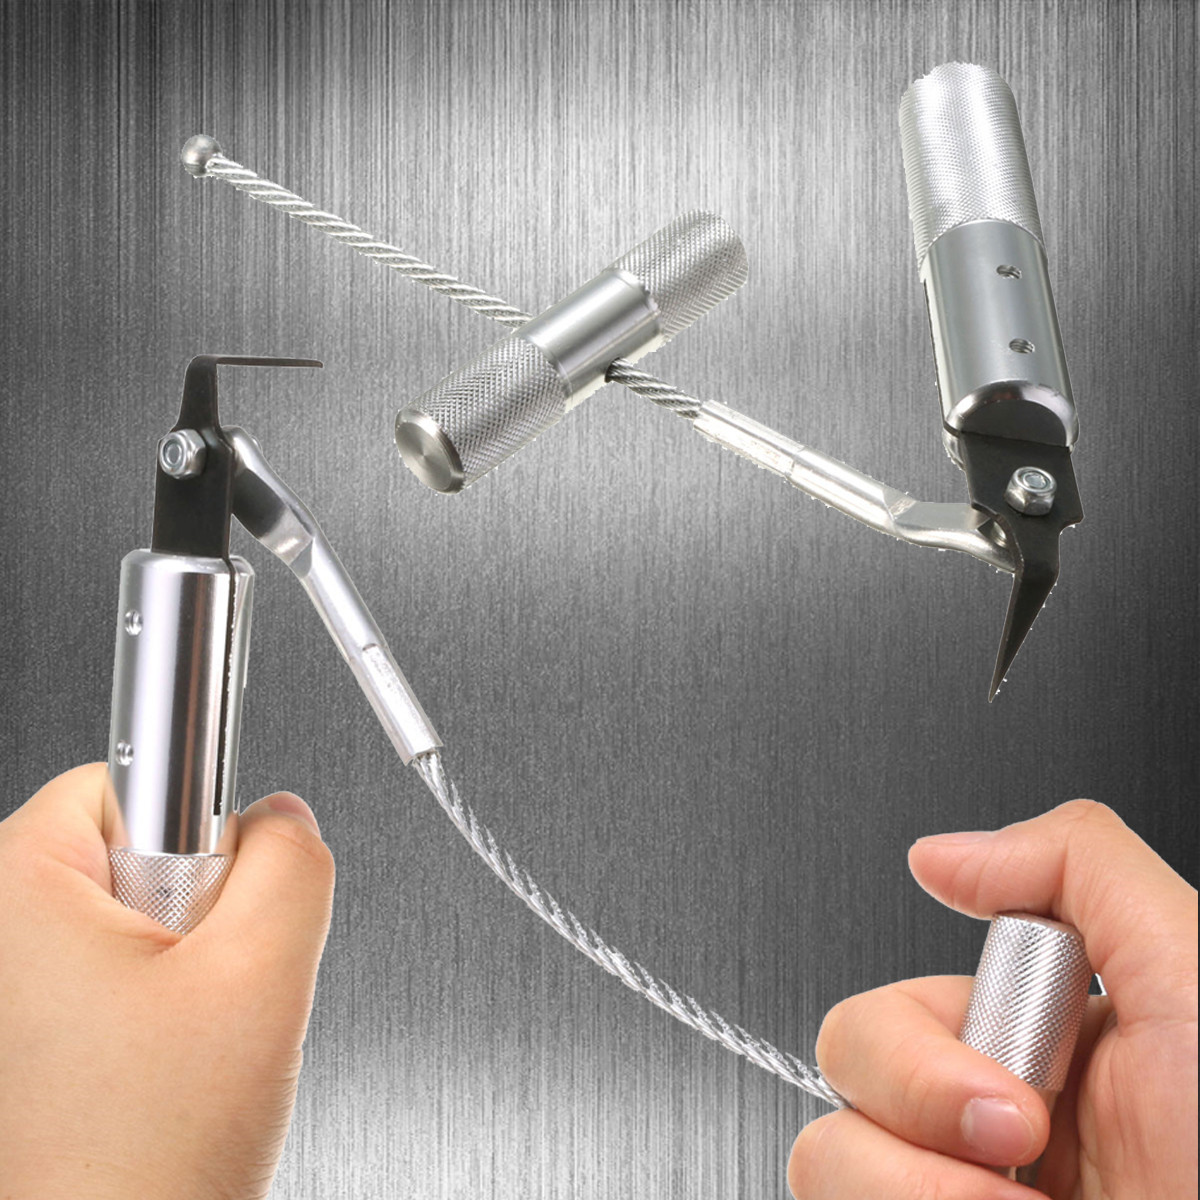 Wind Shield Remover Auto Car Window Glass Seal Rubber Removal Knife Repair Tool